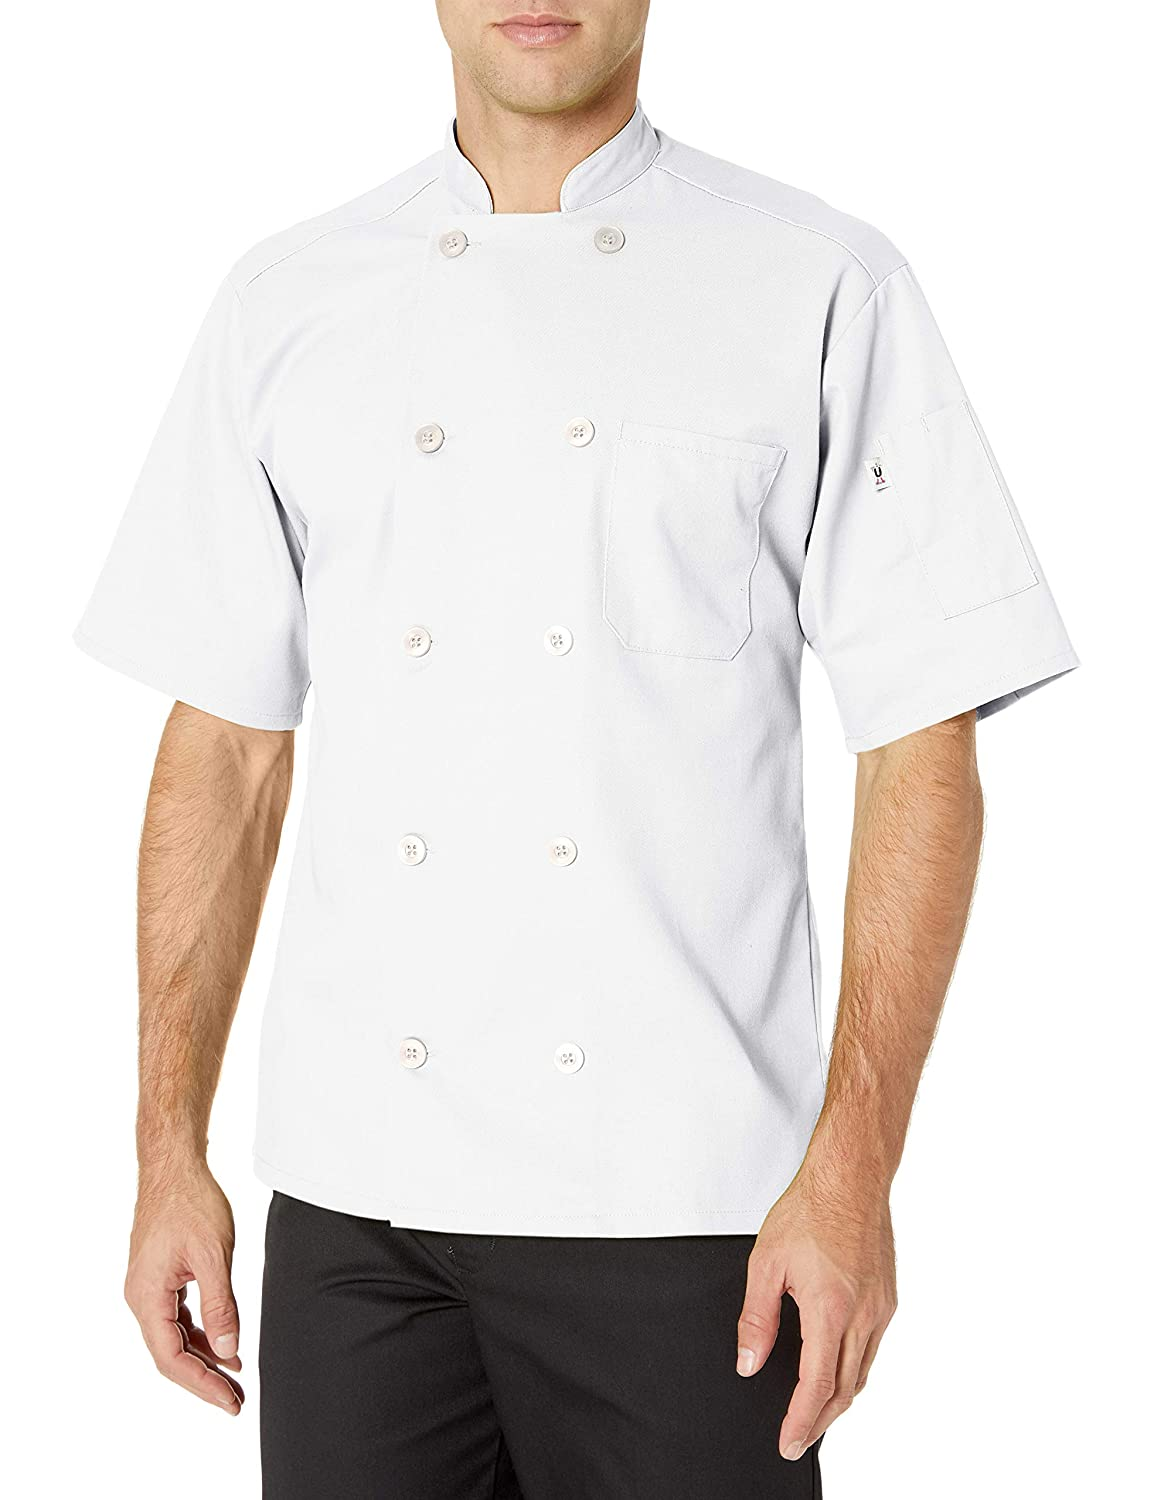 Uncommon Threads South Beach Chef Coat Short Sleeves